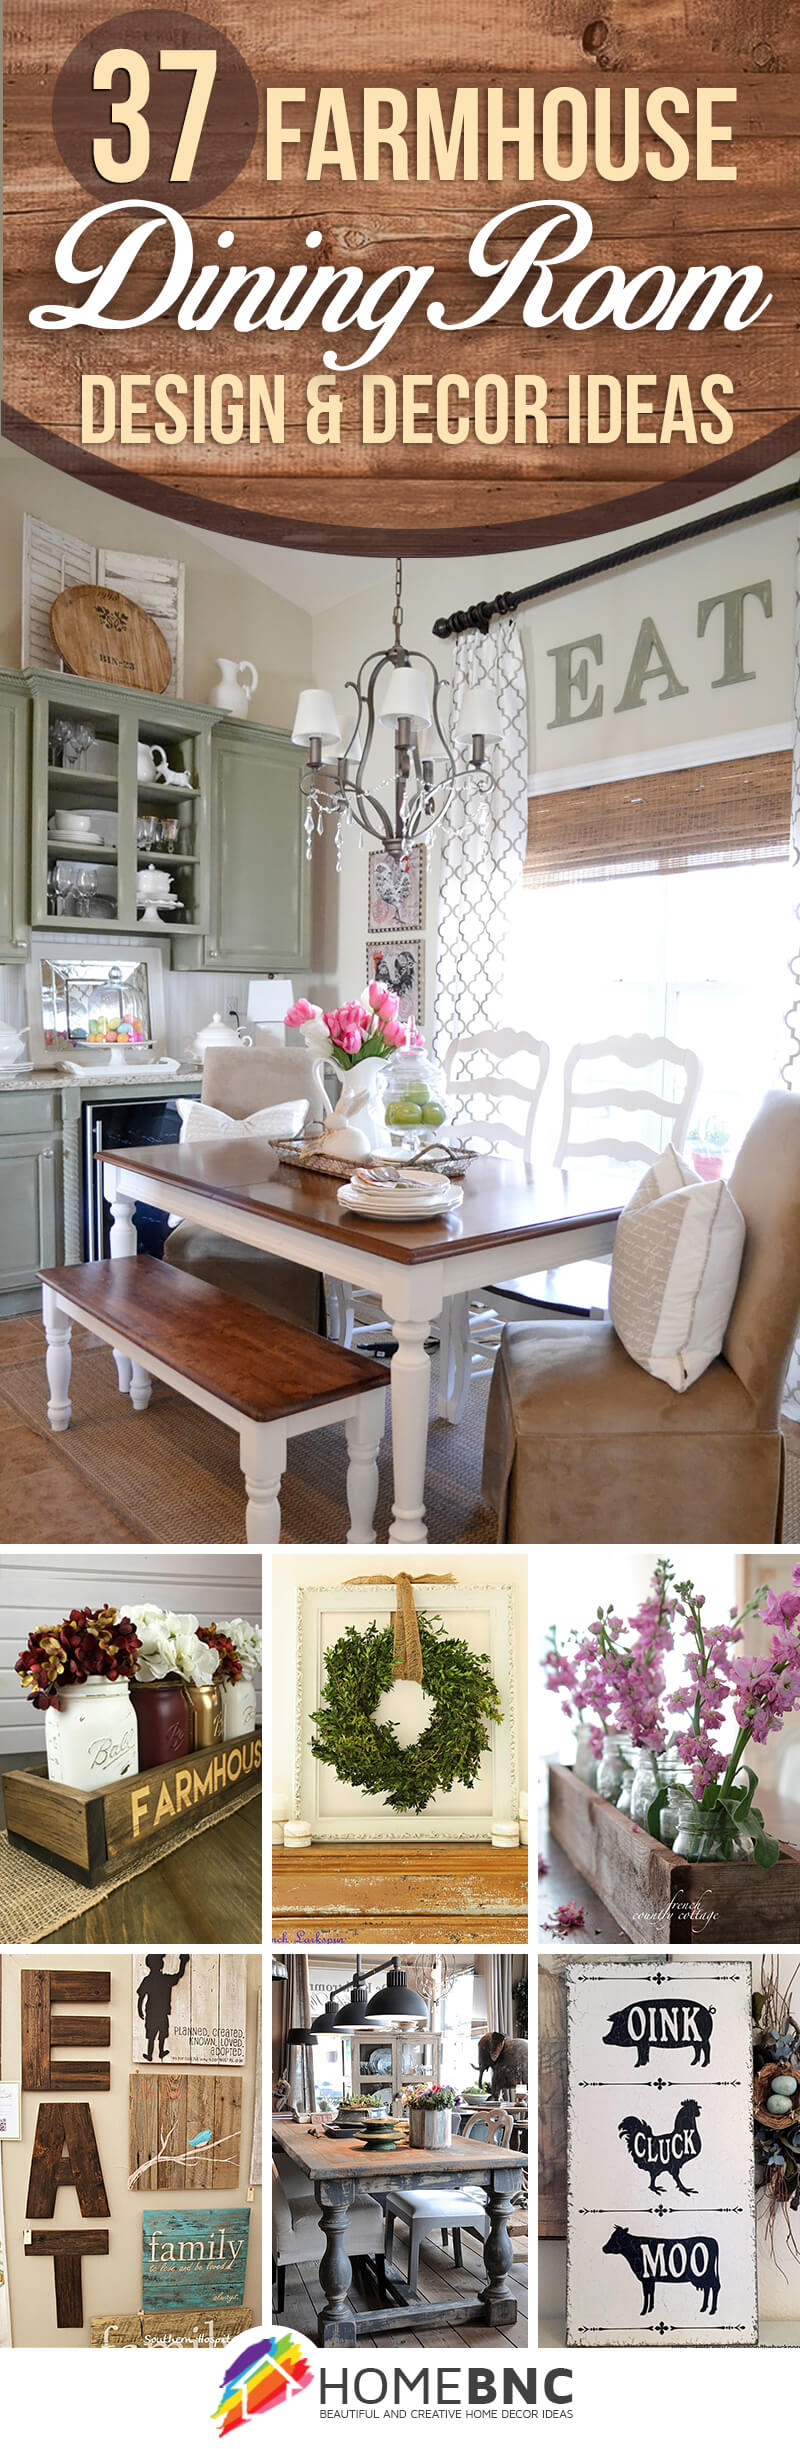 17 charming farmhouse dining room design and decor ideas for Best farmhouse dining rooms